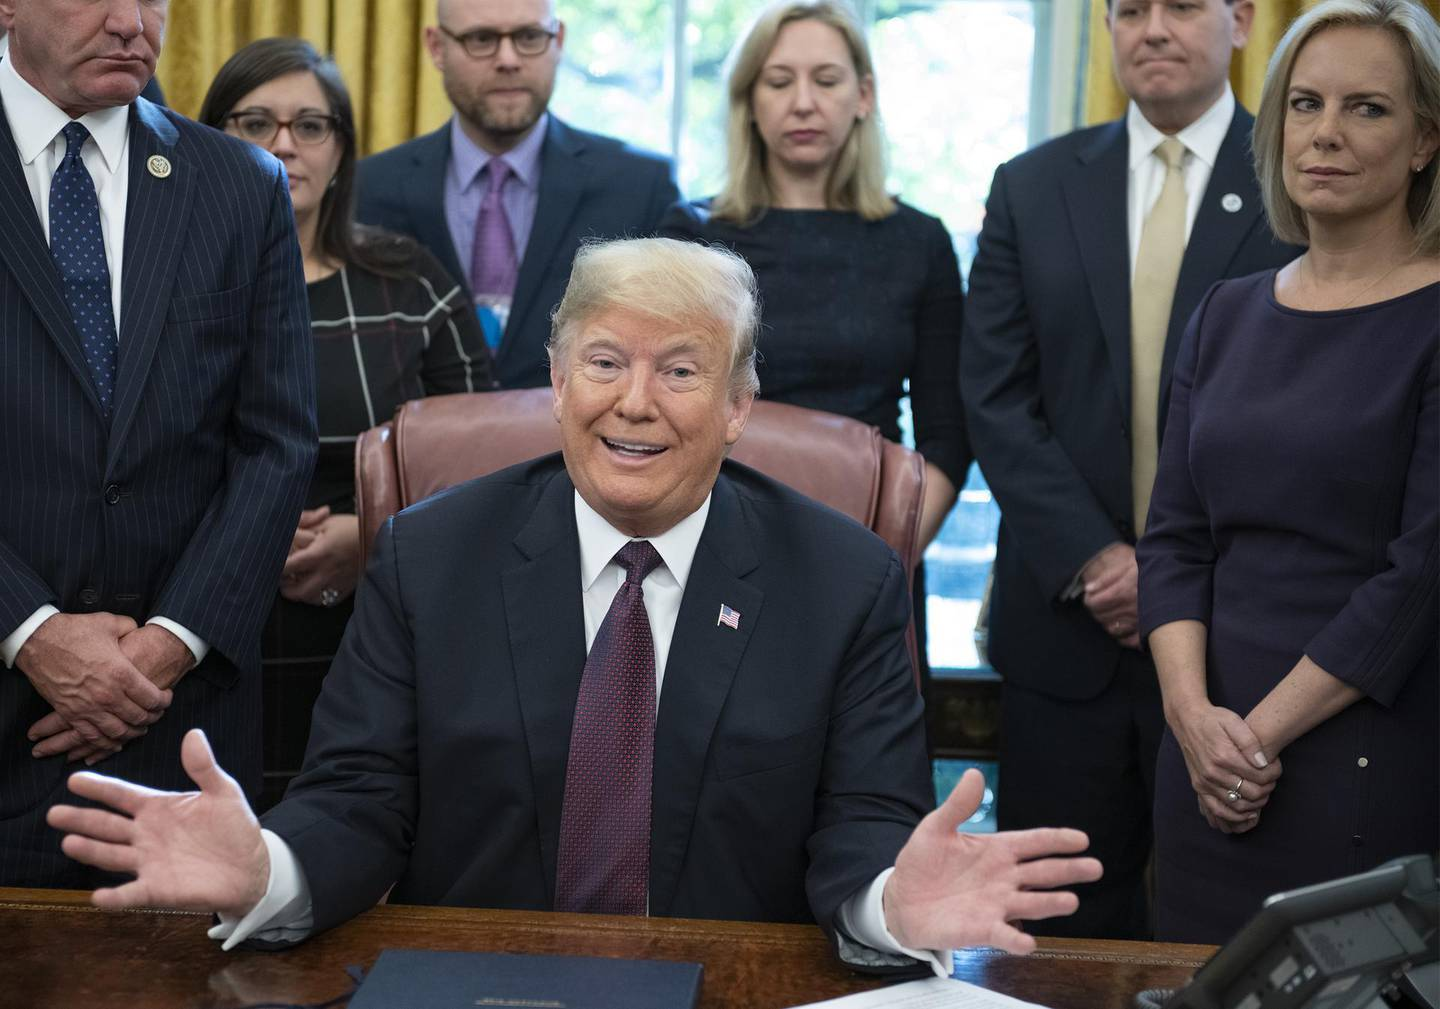 U.S. President Donald Trump speaks before signing the Cybersecurity and Infrastructure Security Agency Act in the Oval Office of the White House in Washington, D.C., U.S., on Friday, Nov. 16, 2018. Trumpsaid that he has just finished writing answers to questions from Special CounselRobert Muellerbut hasn't submitted them yet. Photographer: Ron Sachs/Pool via Bloomberg